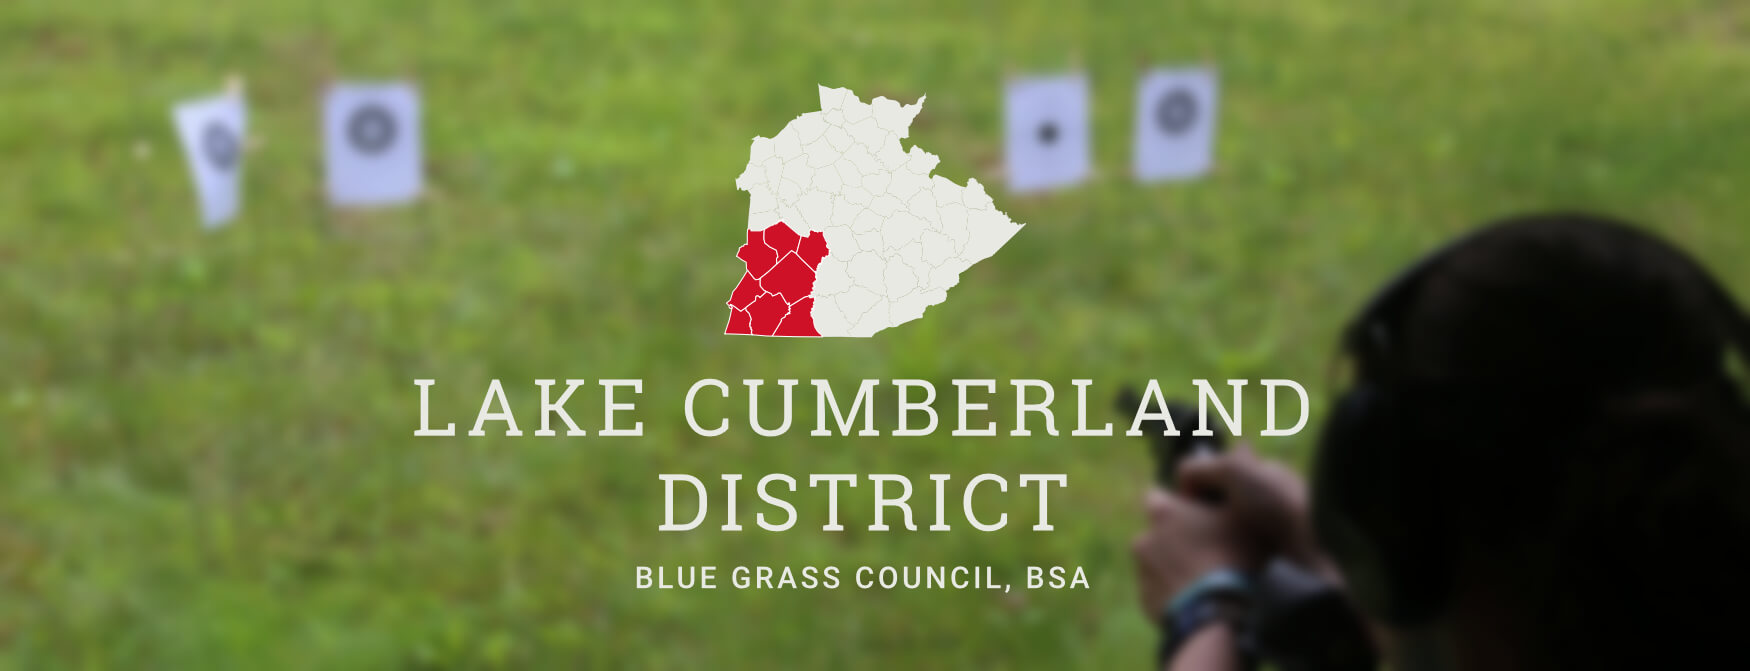 Lake Cumberland District